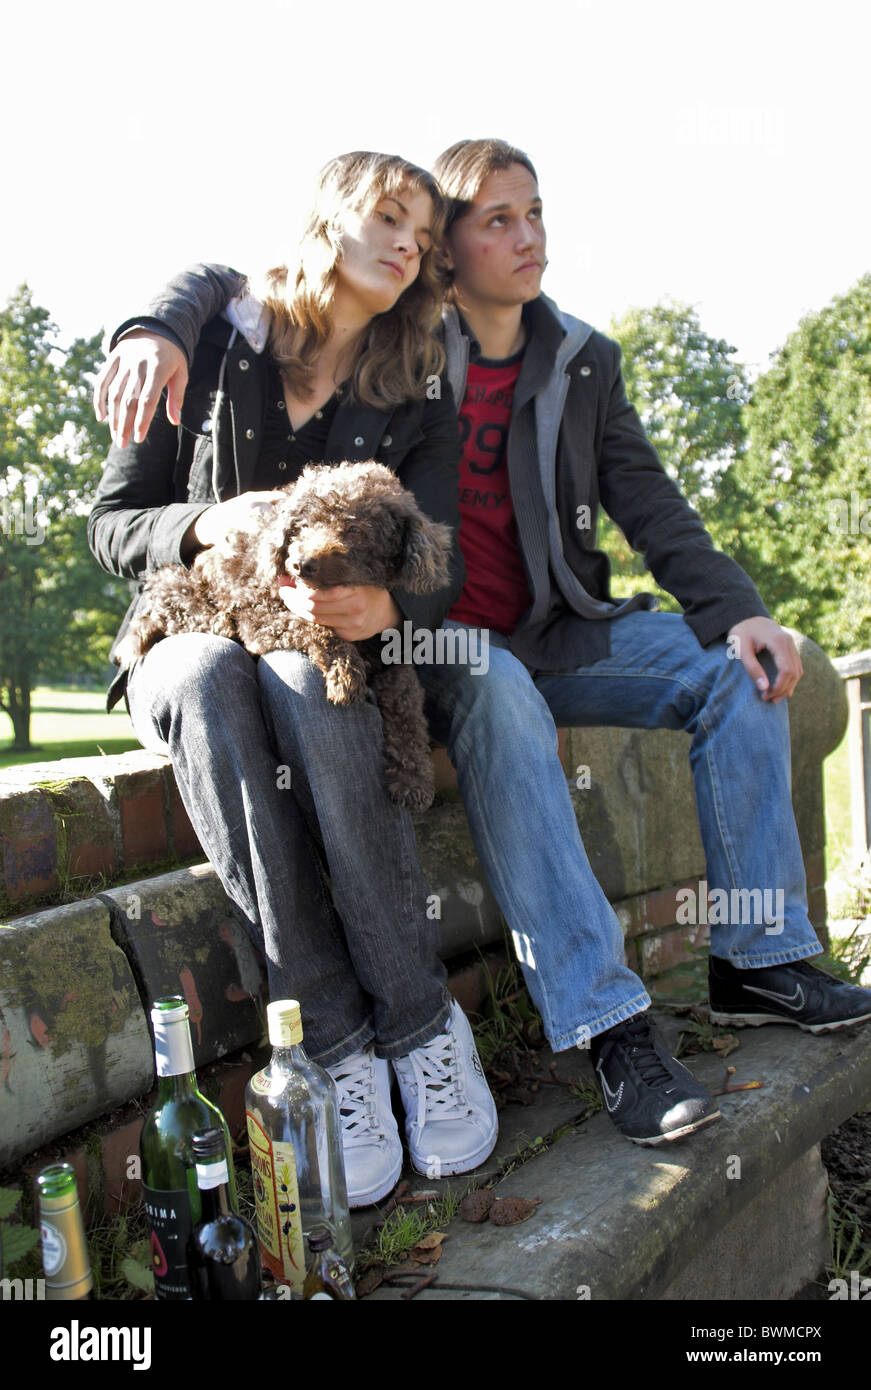 Boozer alcoholic Jobless unemployed persons hopelessly Sad bored Couple outside two persons woman man you - Stock Image